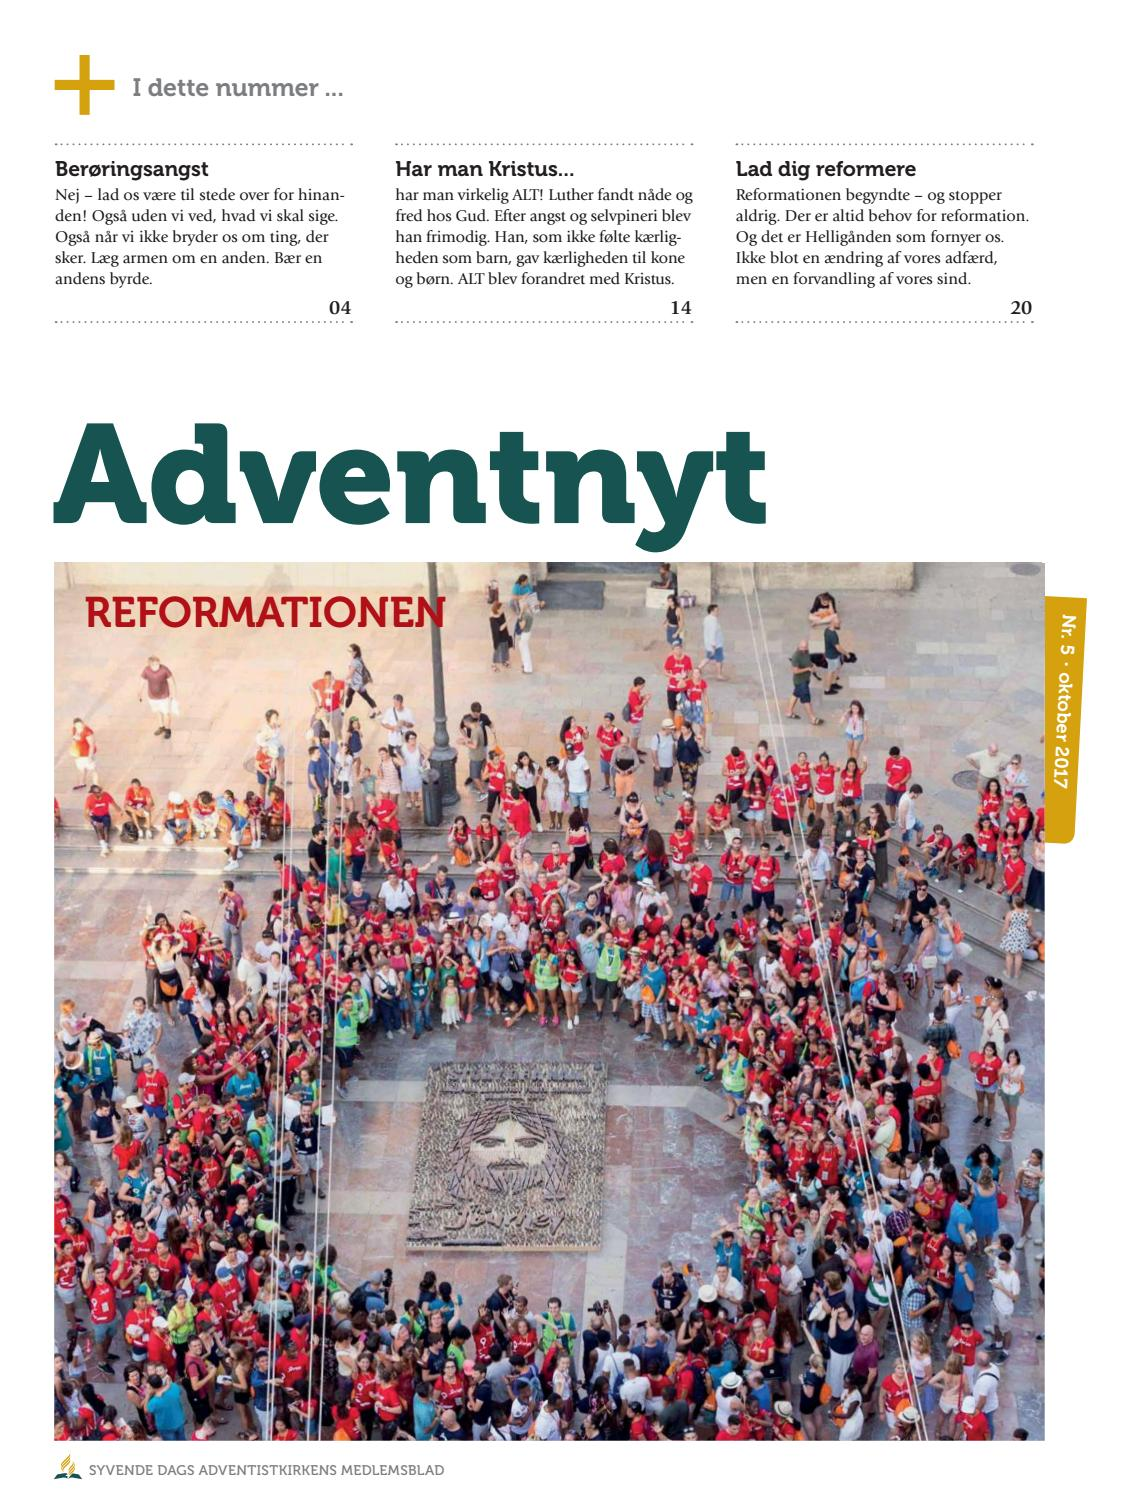 3c4bb0cf145 2017-05 Adventnyt by Adventistkirken - issuu